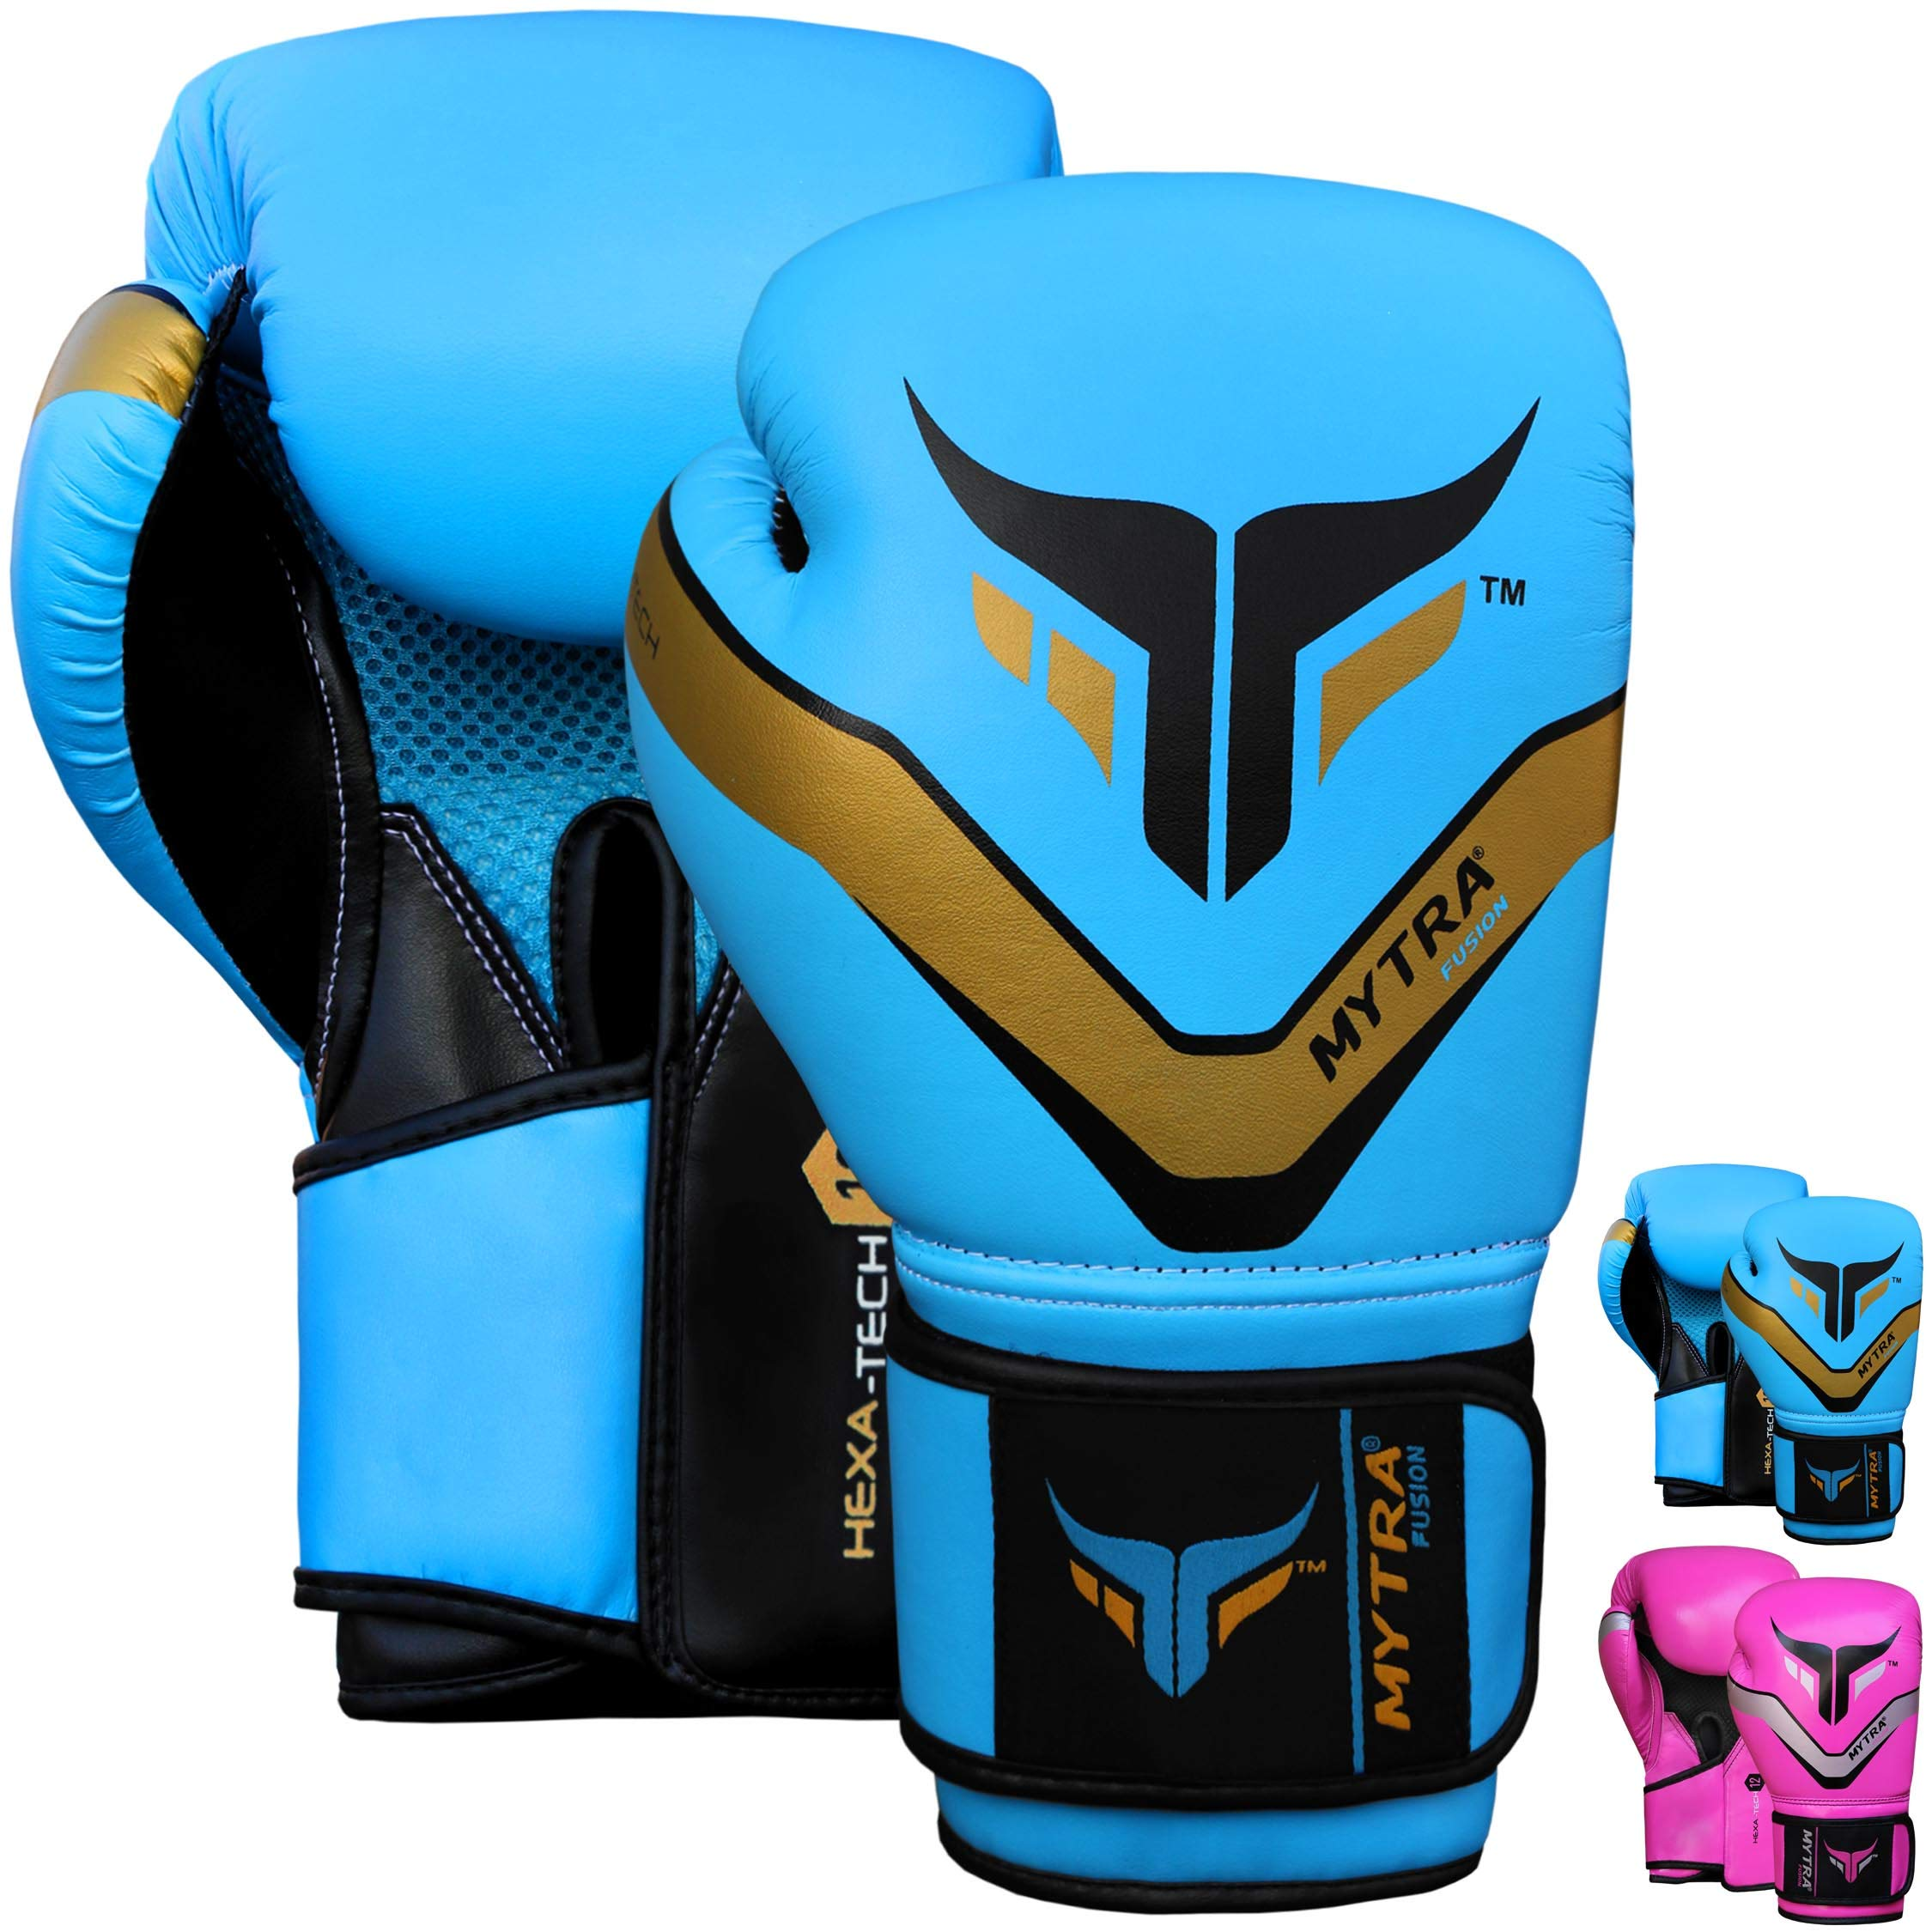 3X Professional Choice Maya Hide Leather Boxing Krav MAGA MMA Grappling Gloves Martial Arts Sparring Punching Bag Cage Combat Training Fighting Mitts Multi Colors//Sizes